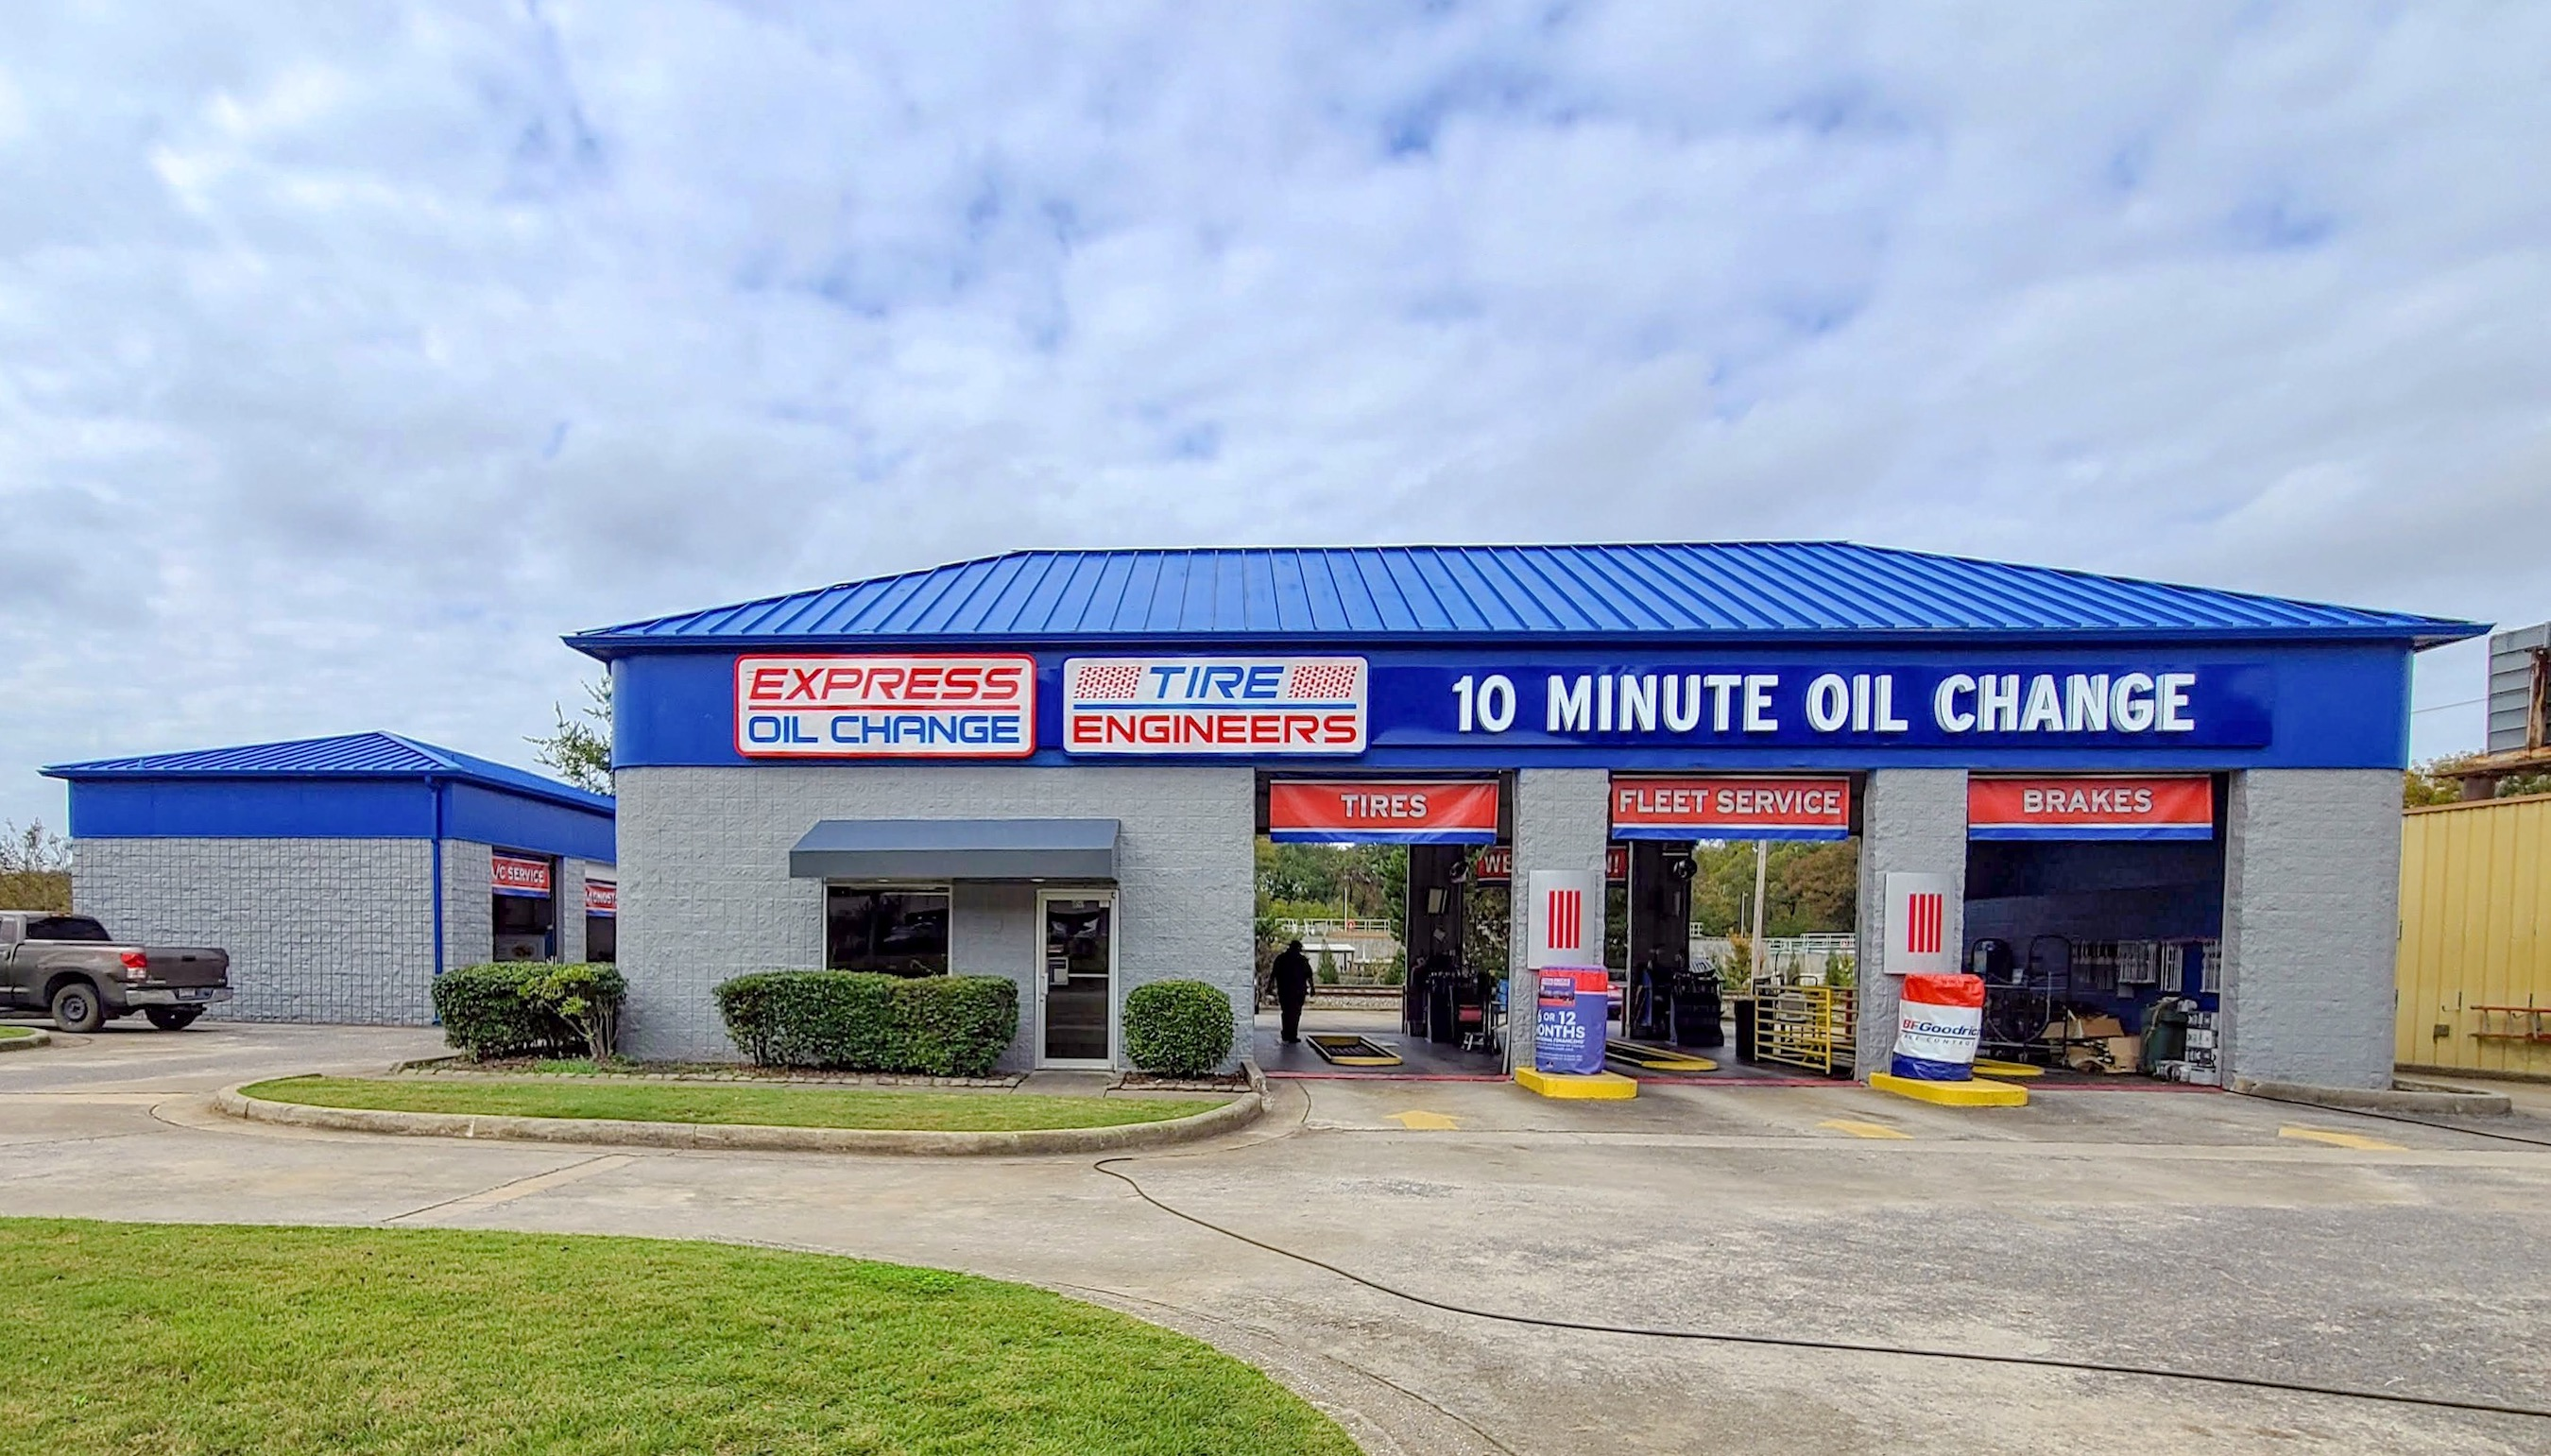 Express Oil Change & Tire Engineers at Alabaster, AL - Buck Creek store